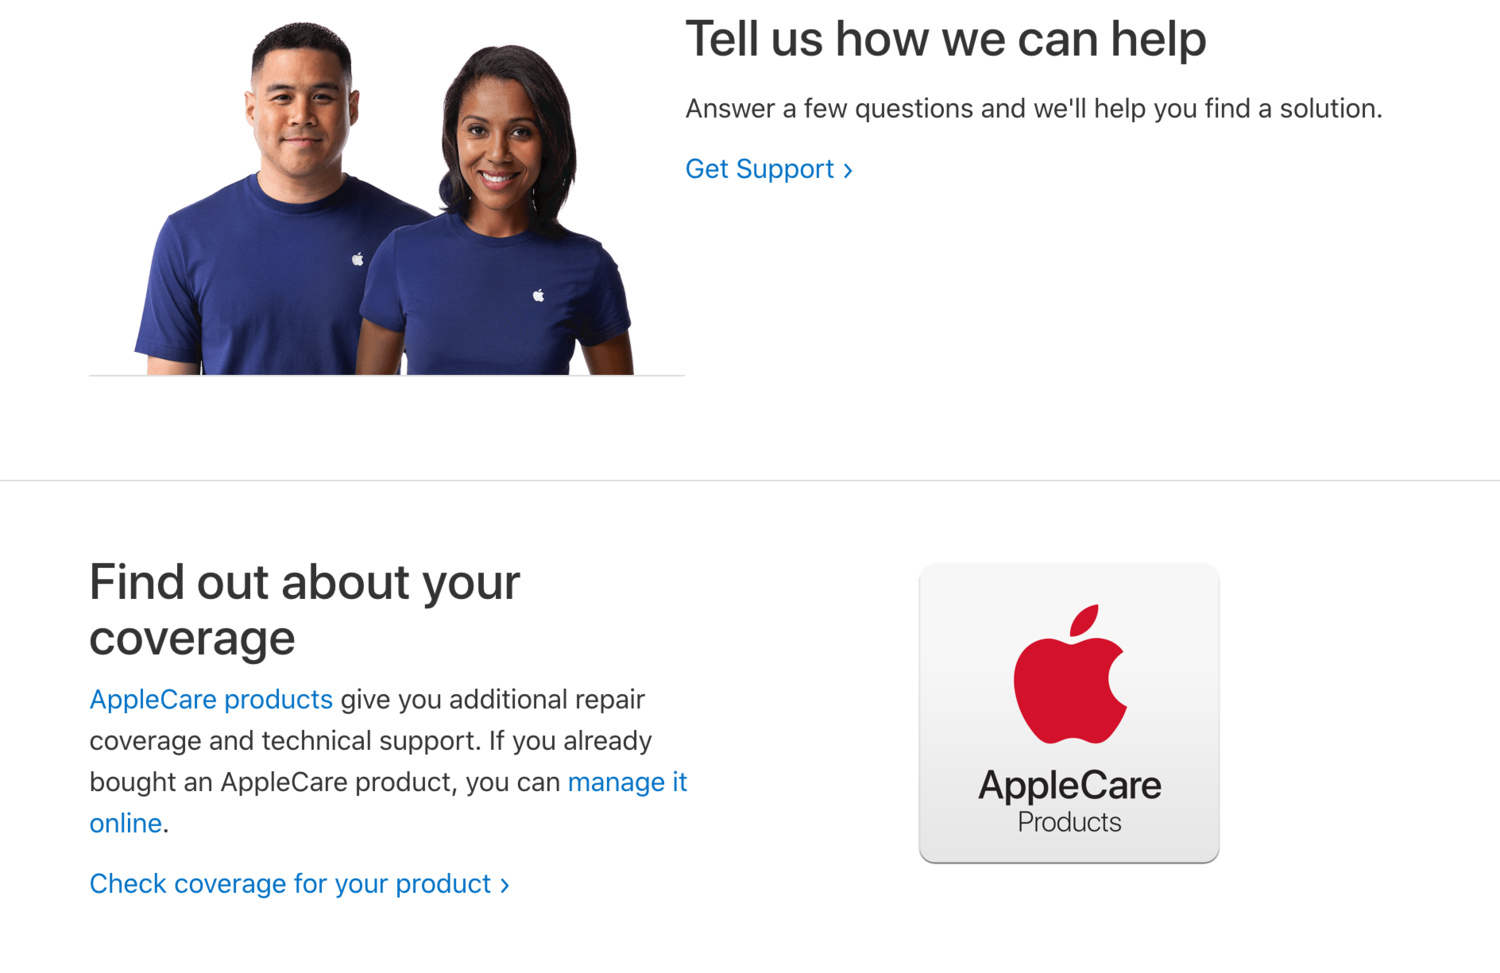 Apple contact self-service